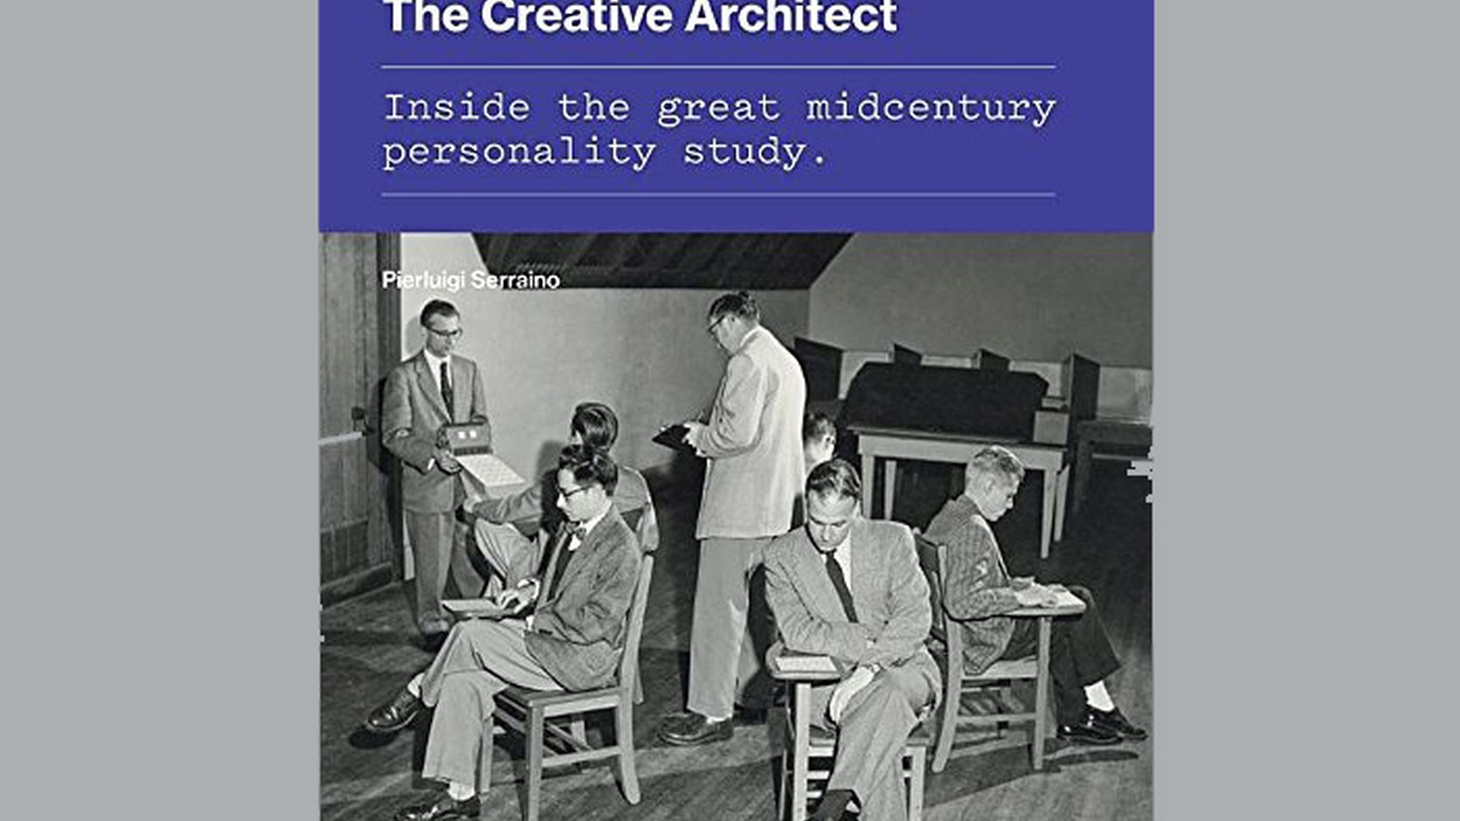 What does creativity have to do with winning the Cold War? In the late 1950s, the top architects of the day were invited to participate in a historic study of creativity at the Institute of Personality Assessment and Research at the University of California, Berkeley. Eero Saarinen, I.M.